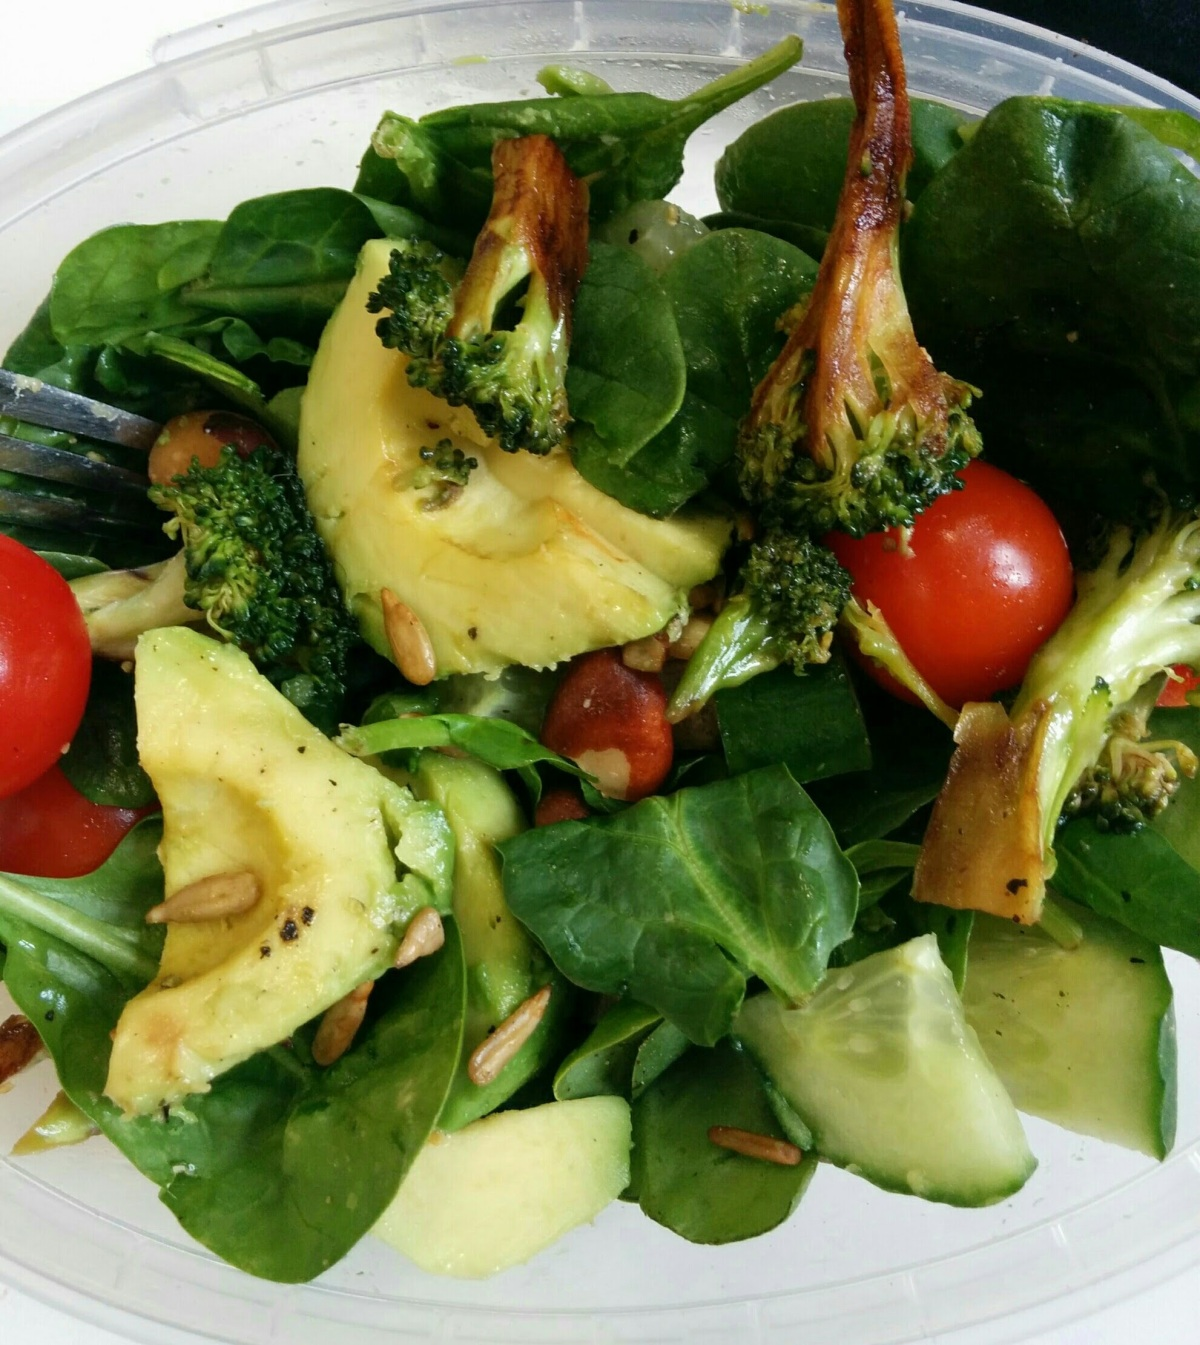 broccoli and avocado salad